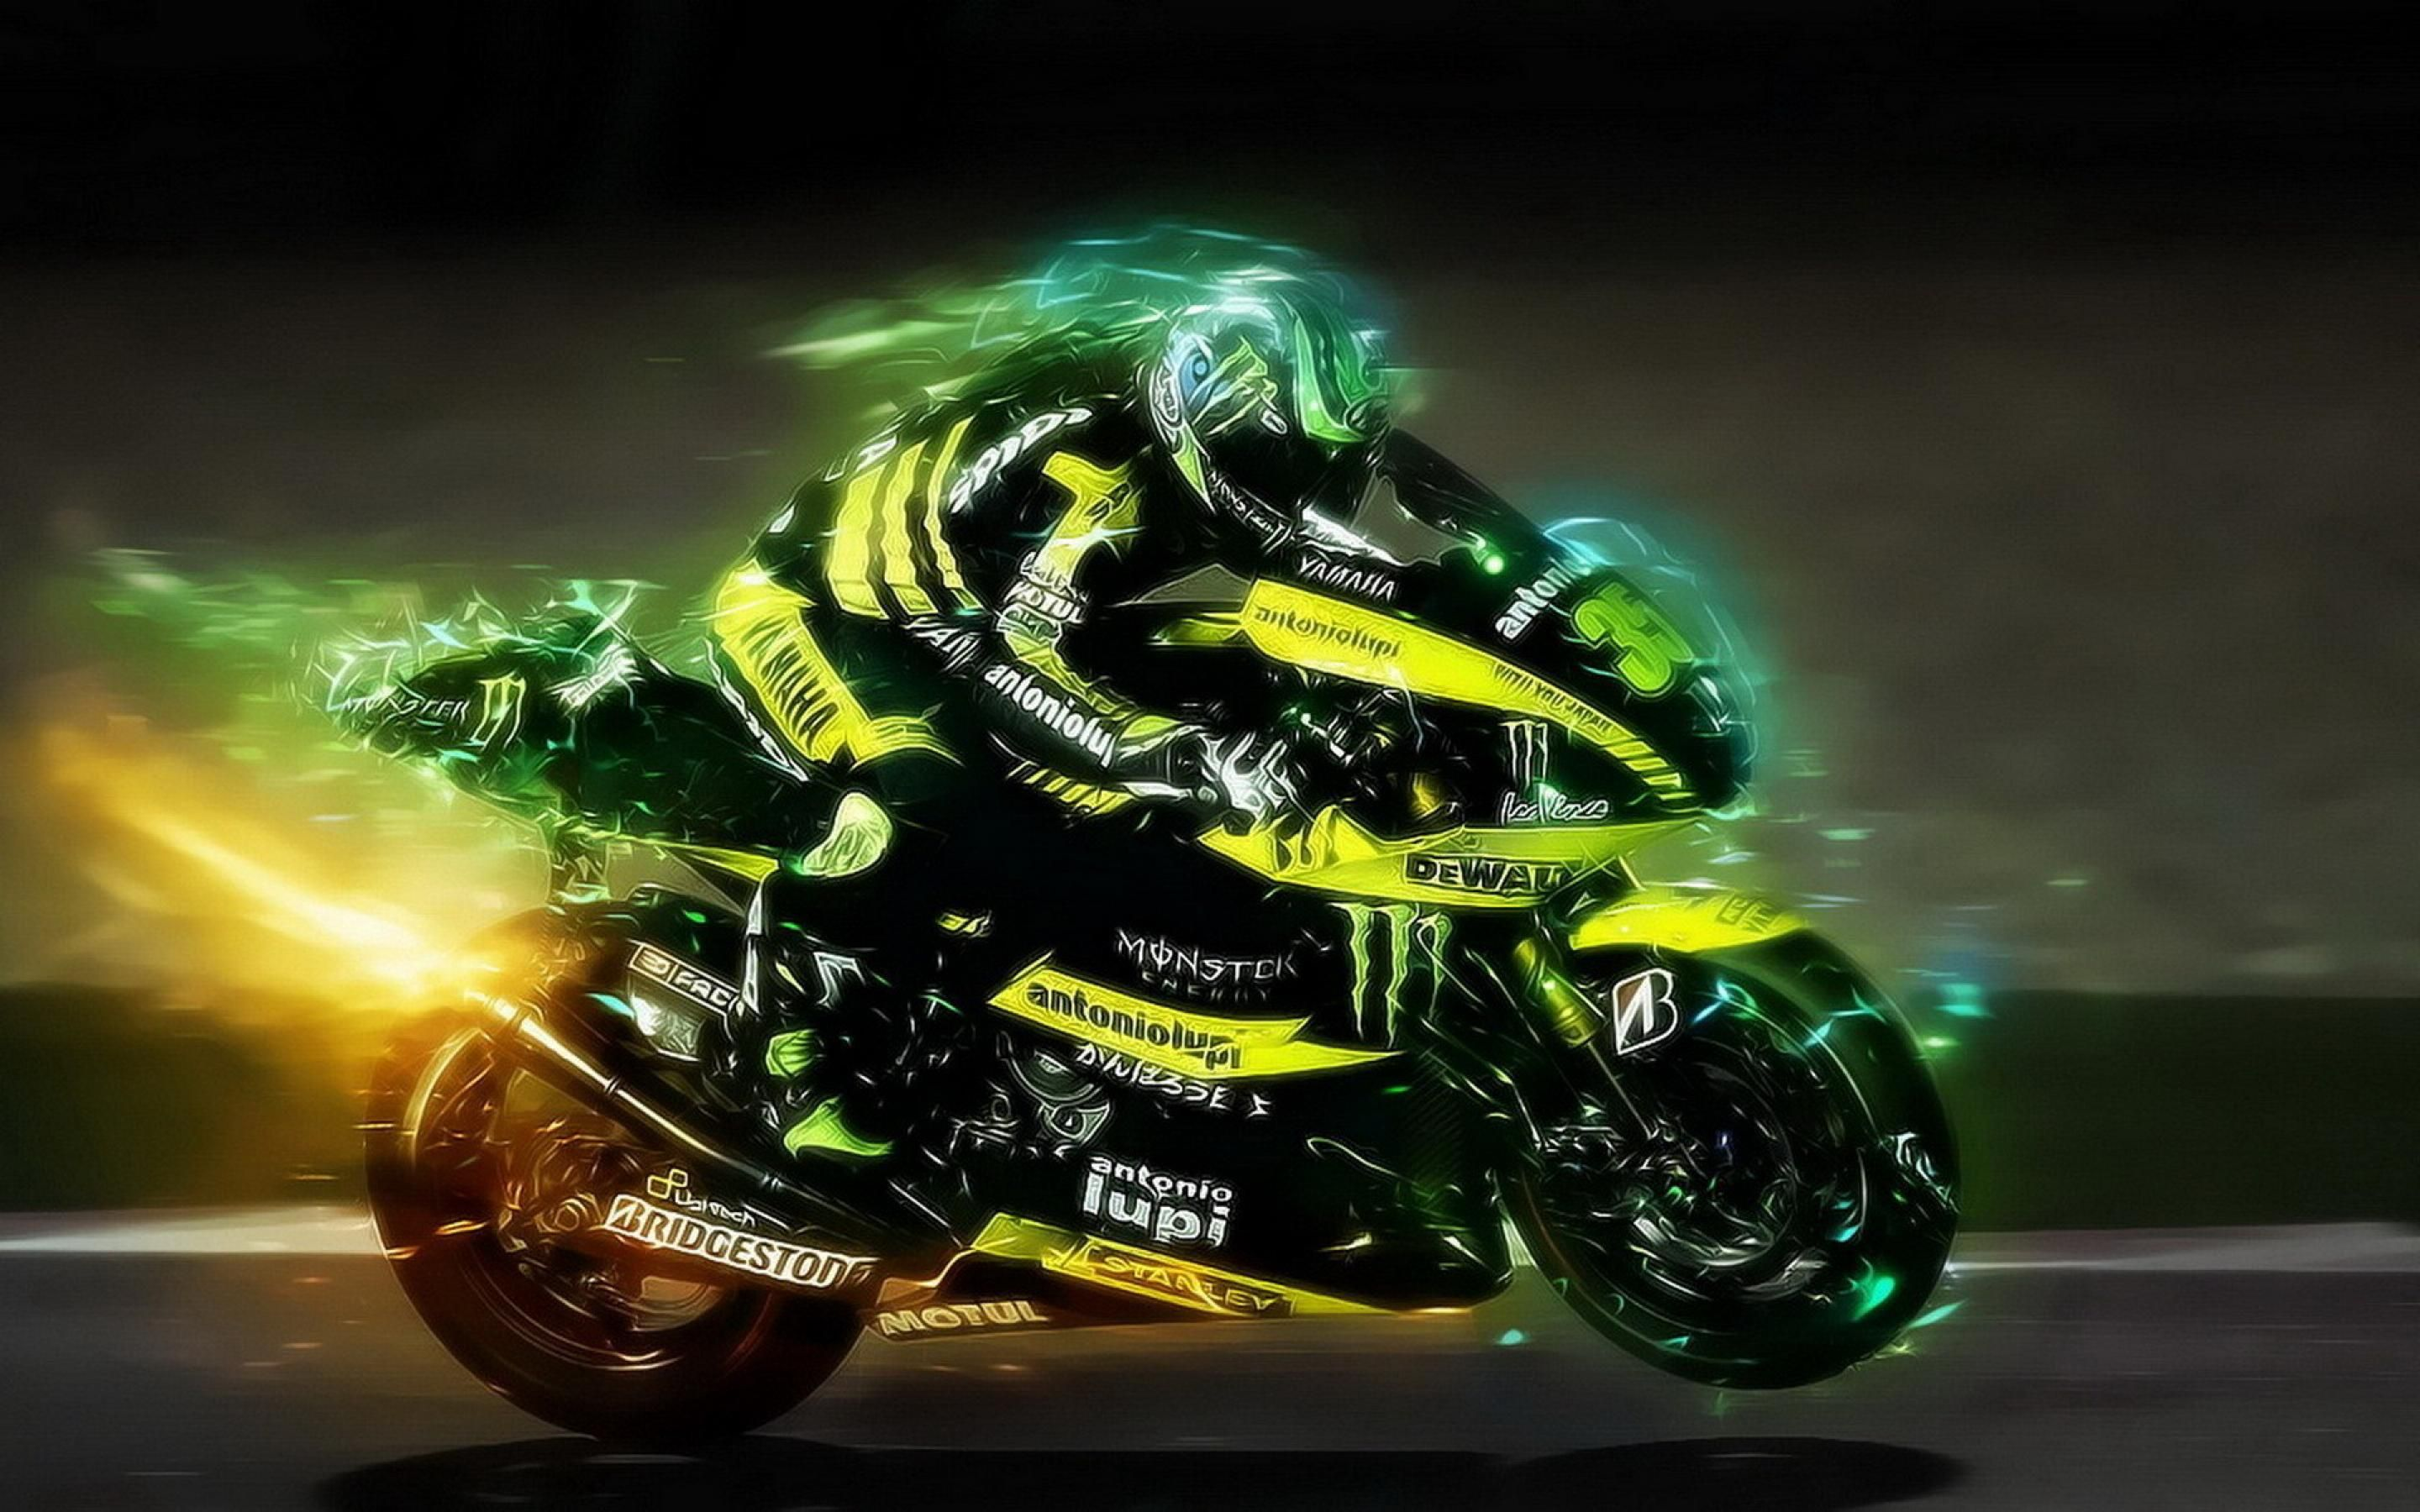 Motorcycle Wallpaper 23 Best Wallpaper Collection Motorcycle Wallpaper Yamaha Bikes Racing Bikes